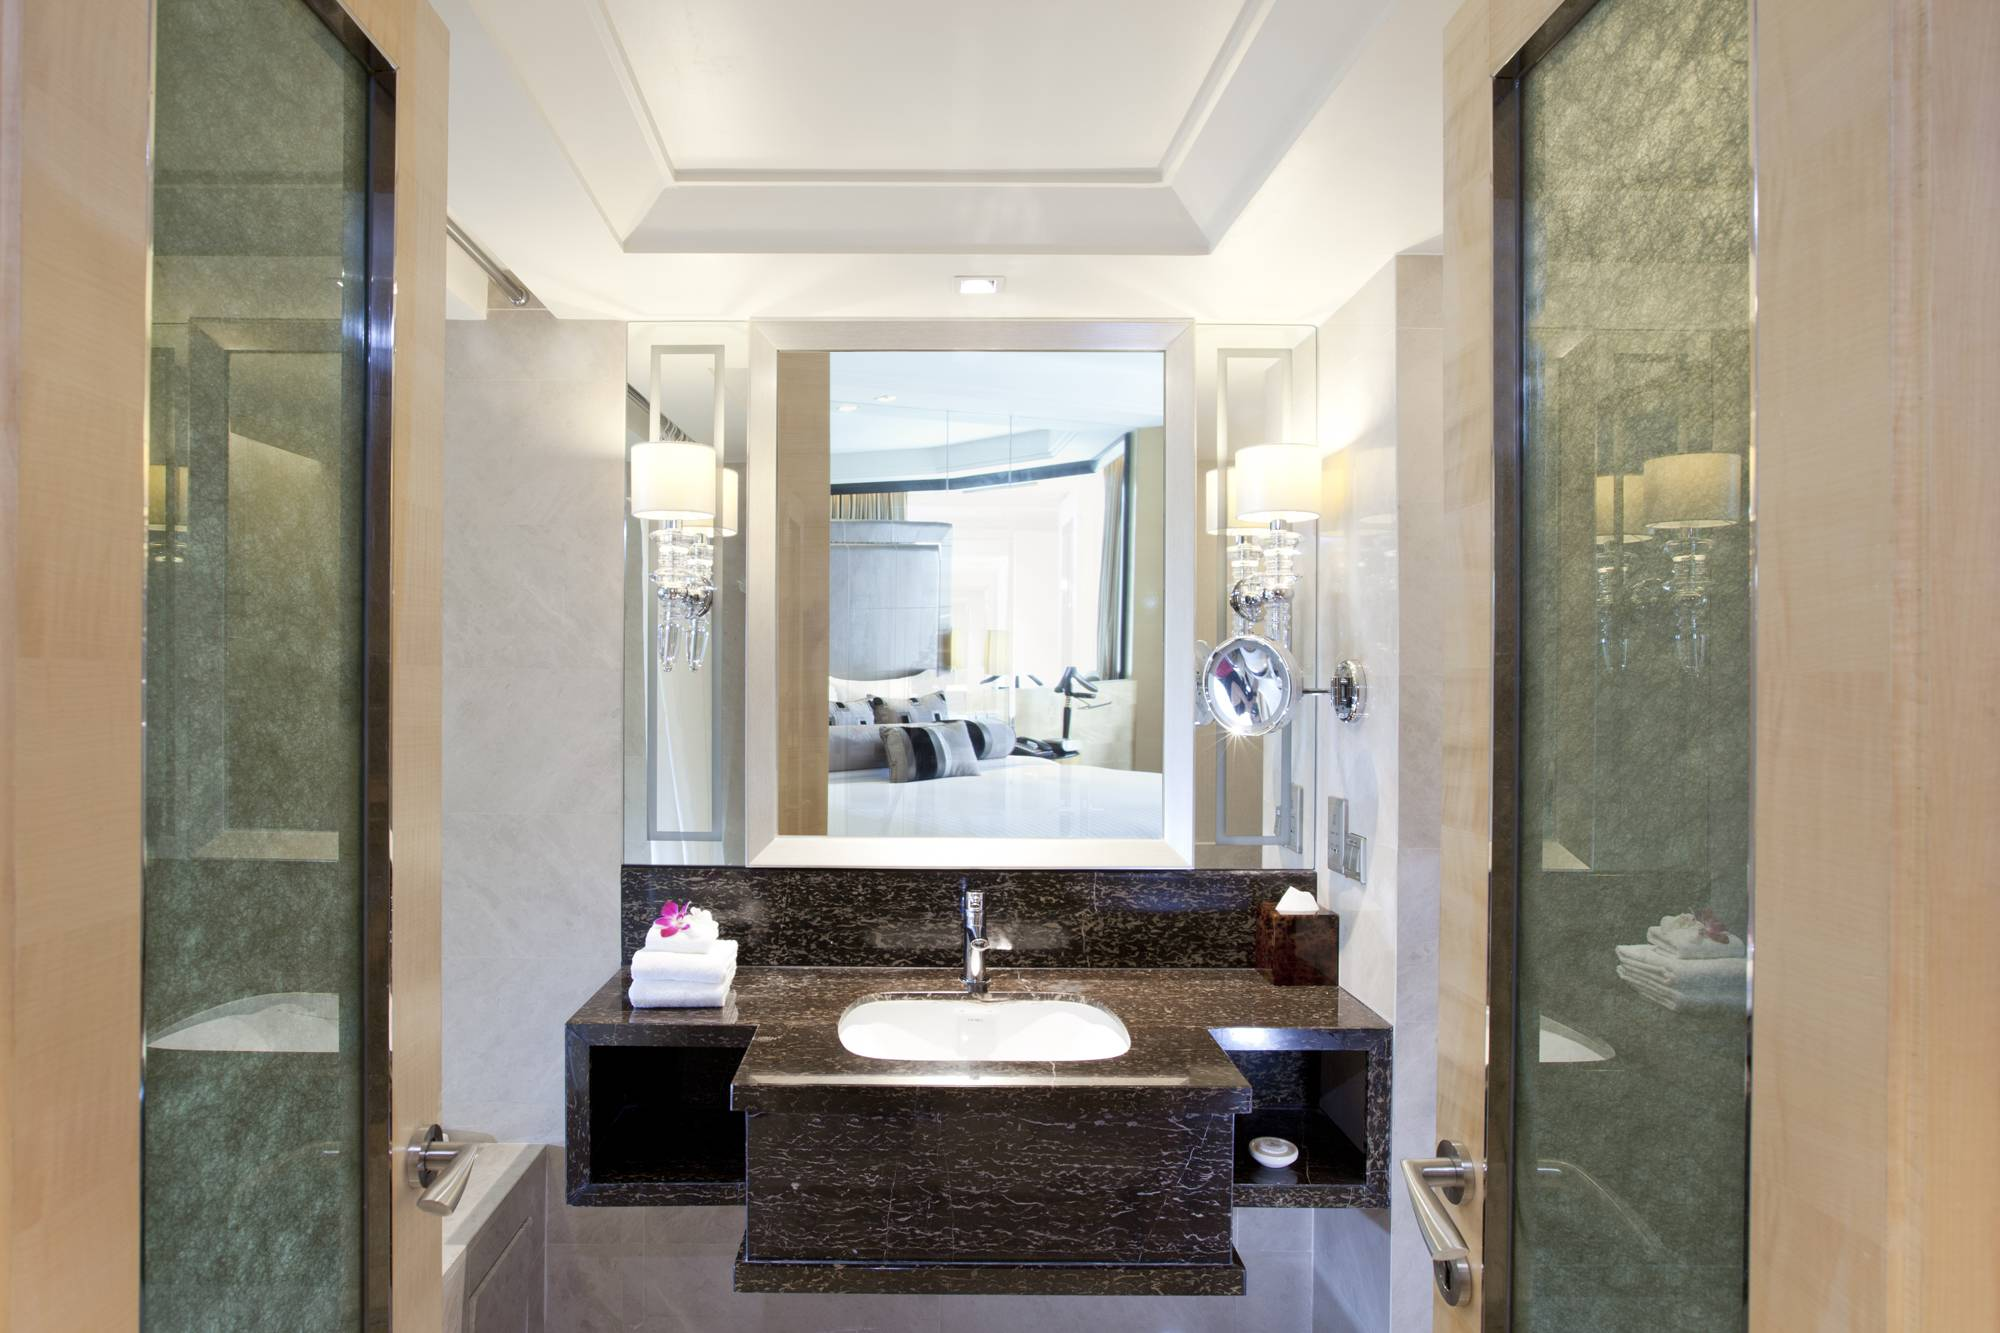 Fully equipped bathroom for you to enjoy the relaxing shower